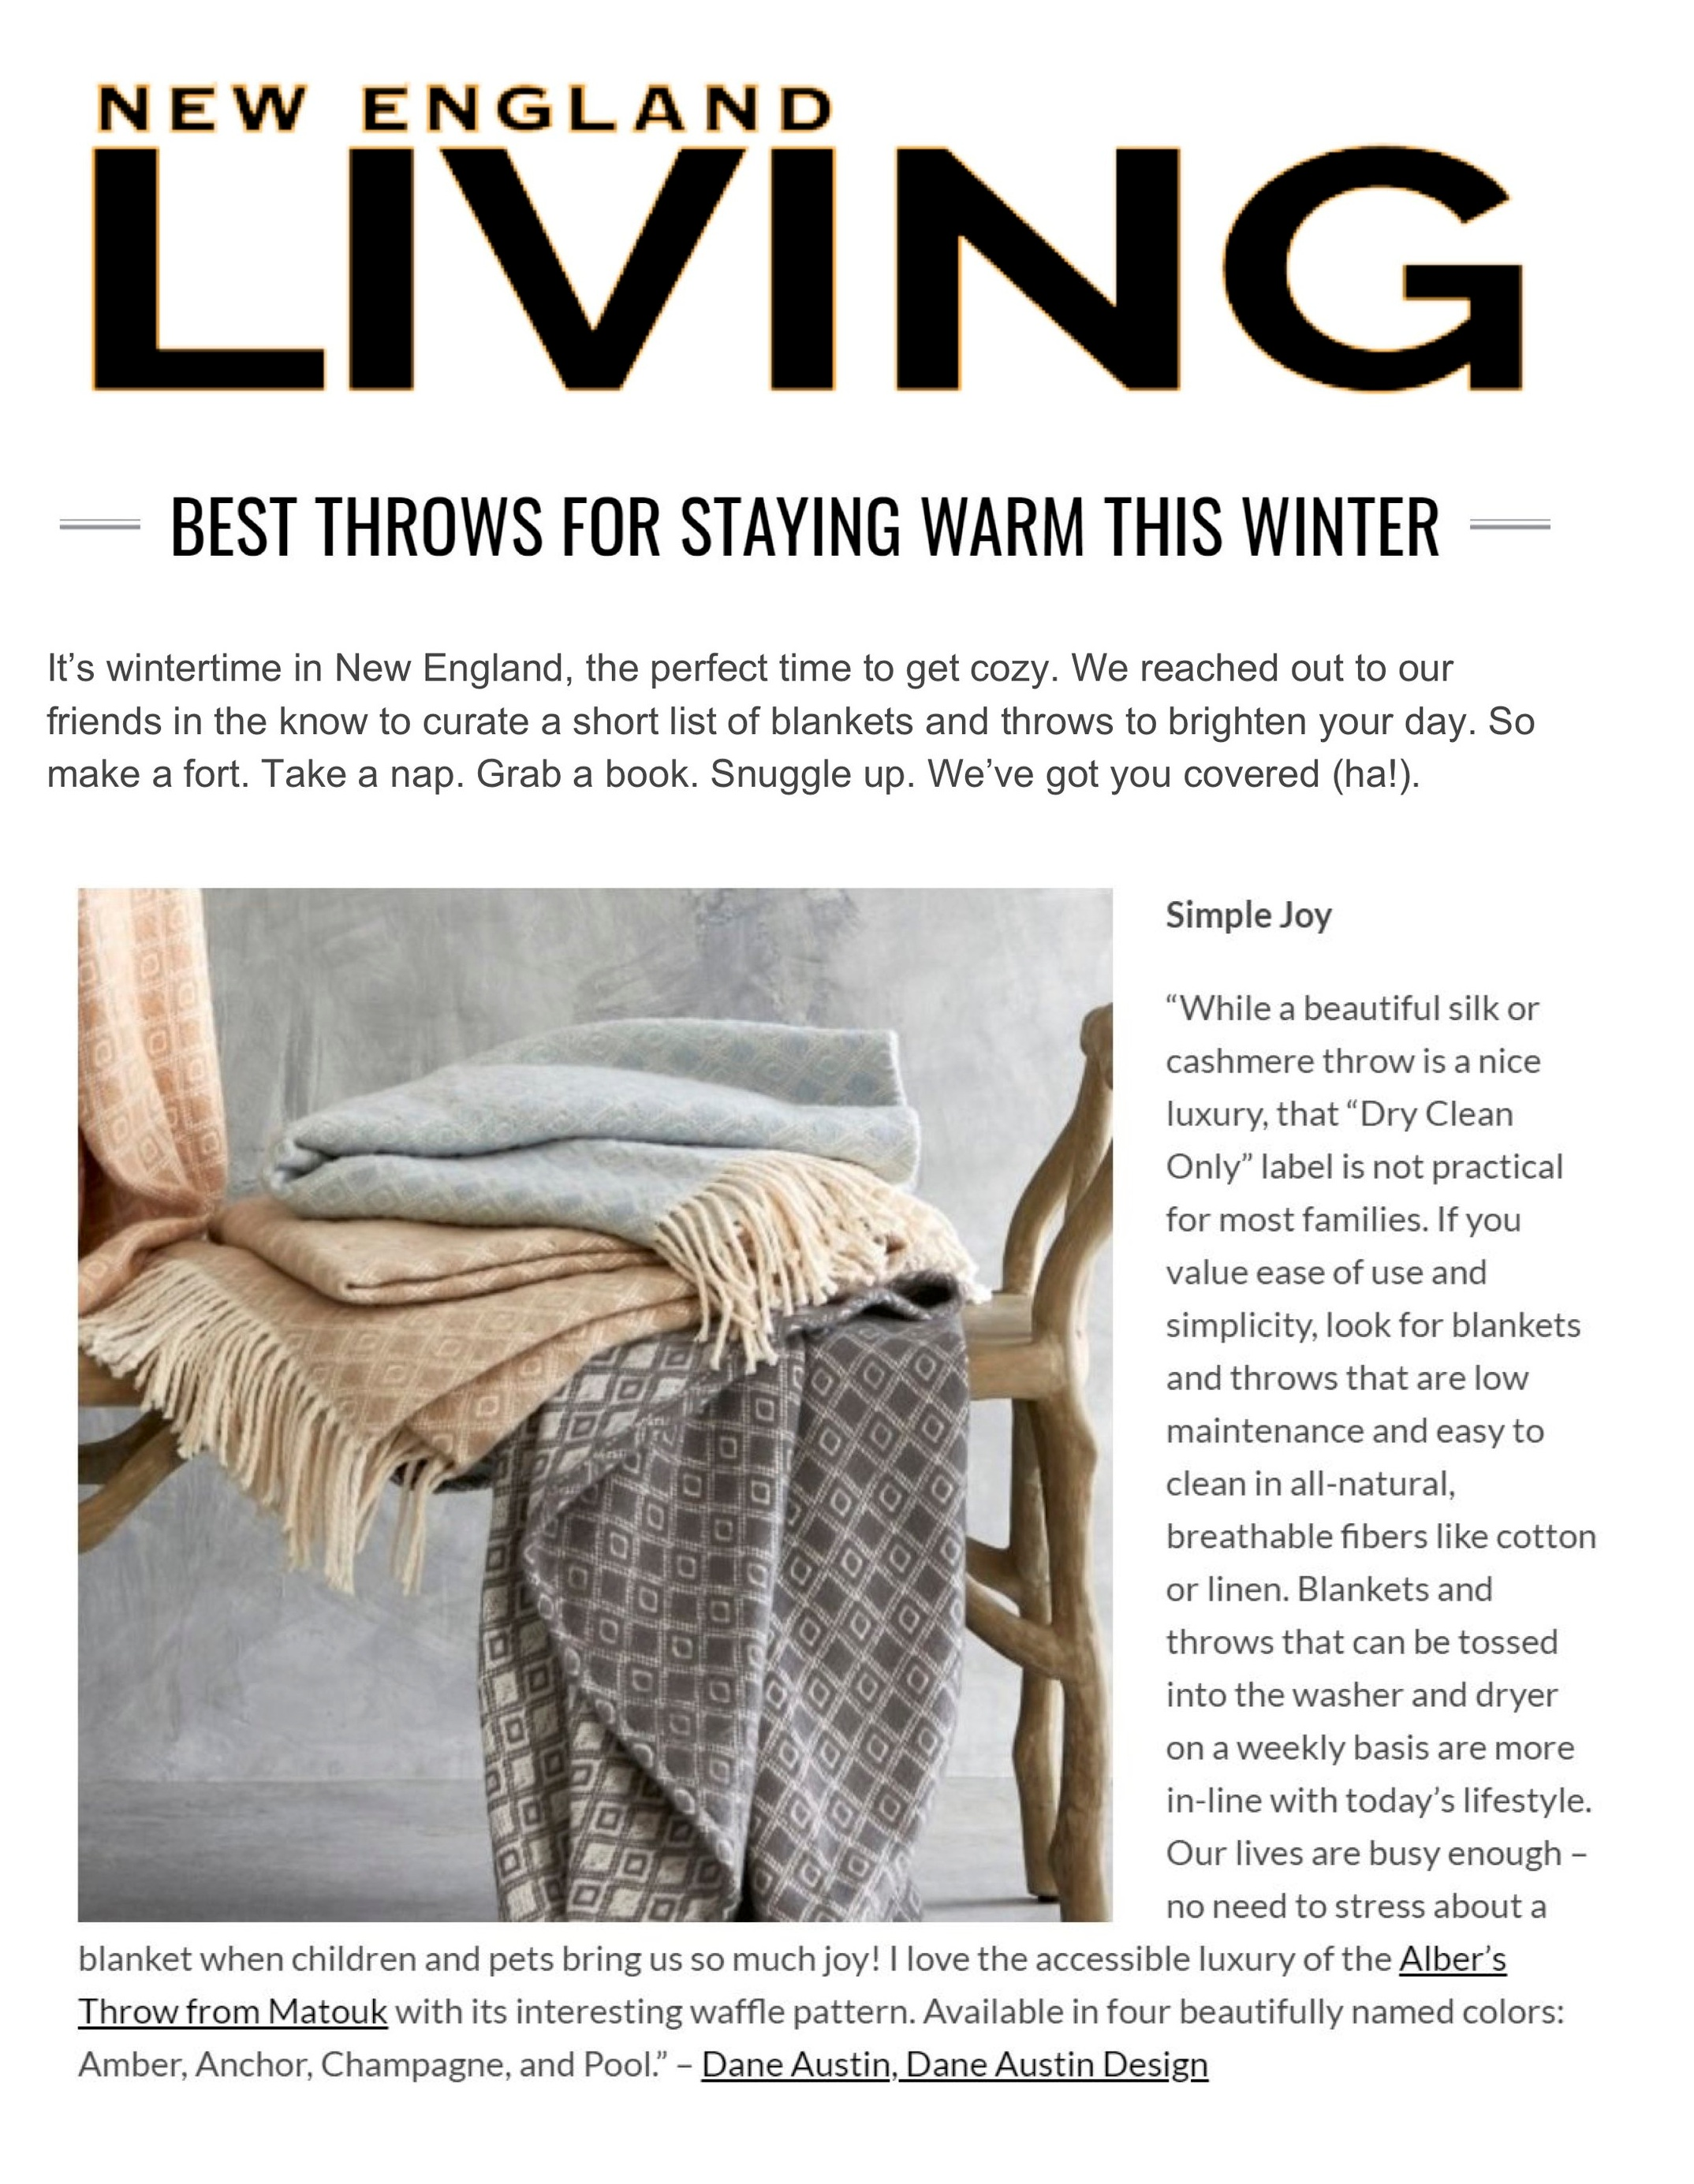 Dane Austin Design featured in New England Living, February 2018